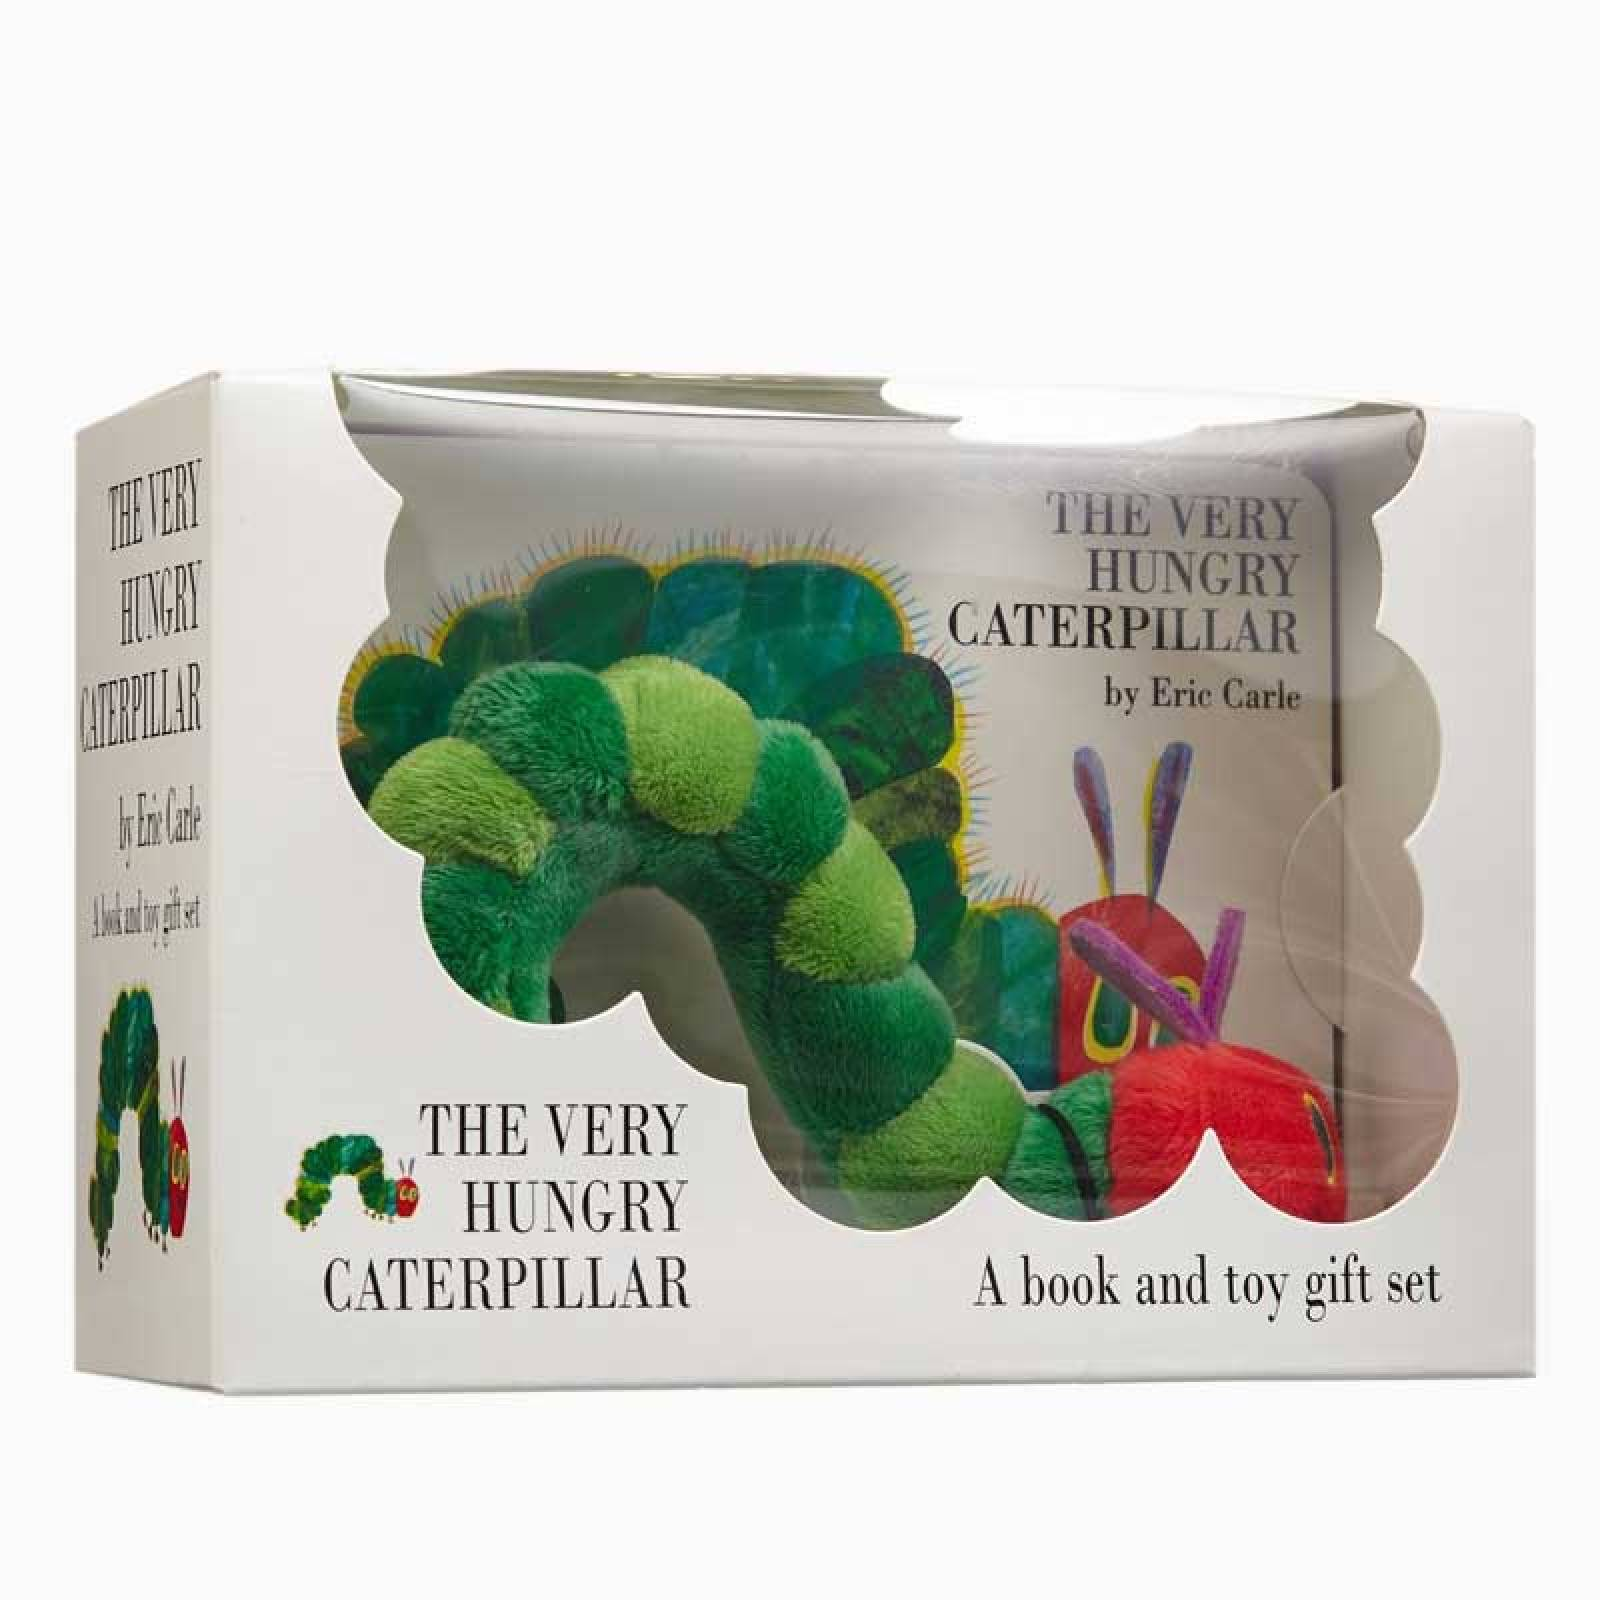 The Very Hungry Caterpillar Hardback Book And Plush Toy Set